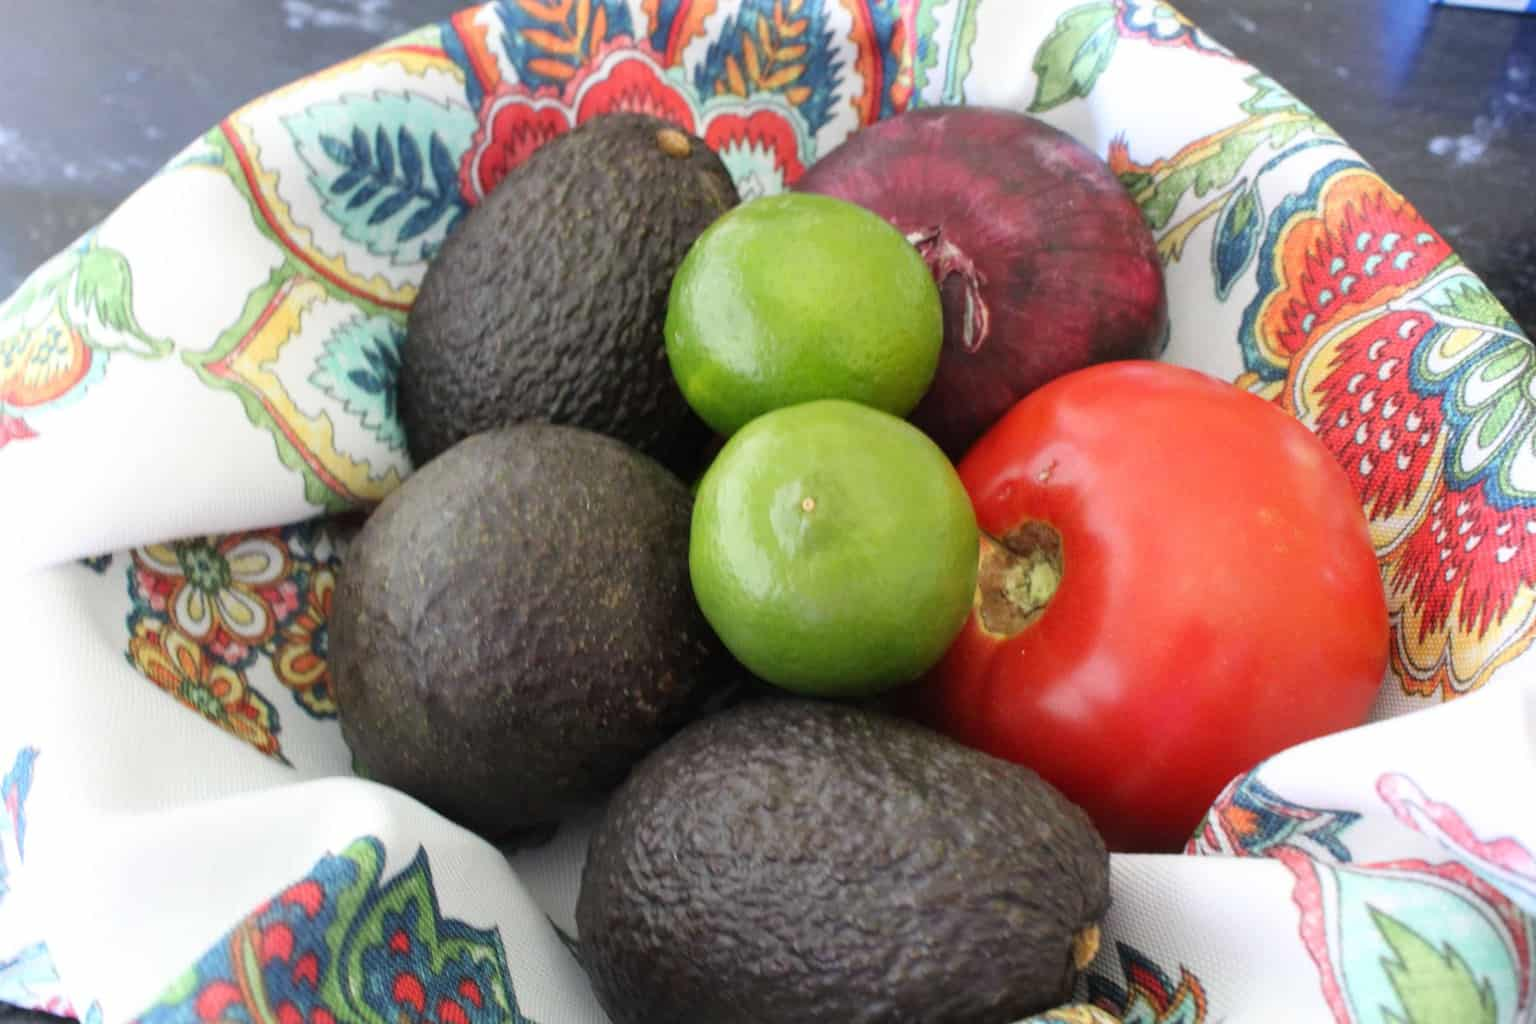 Avocados, limes, tomato and red onion in decorative bowl.